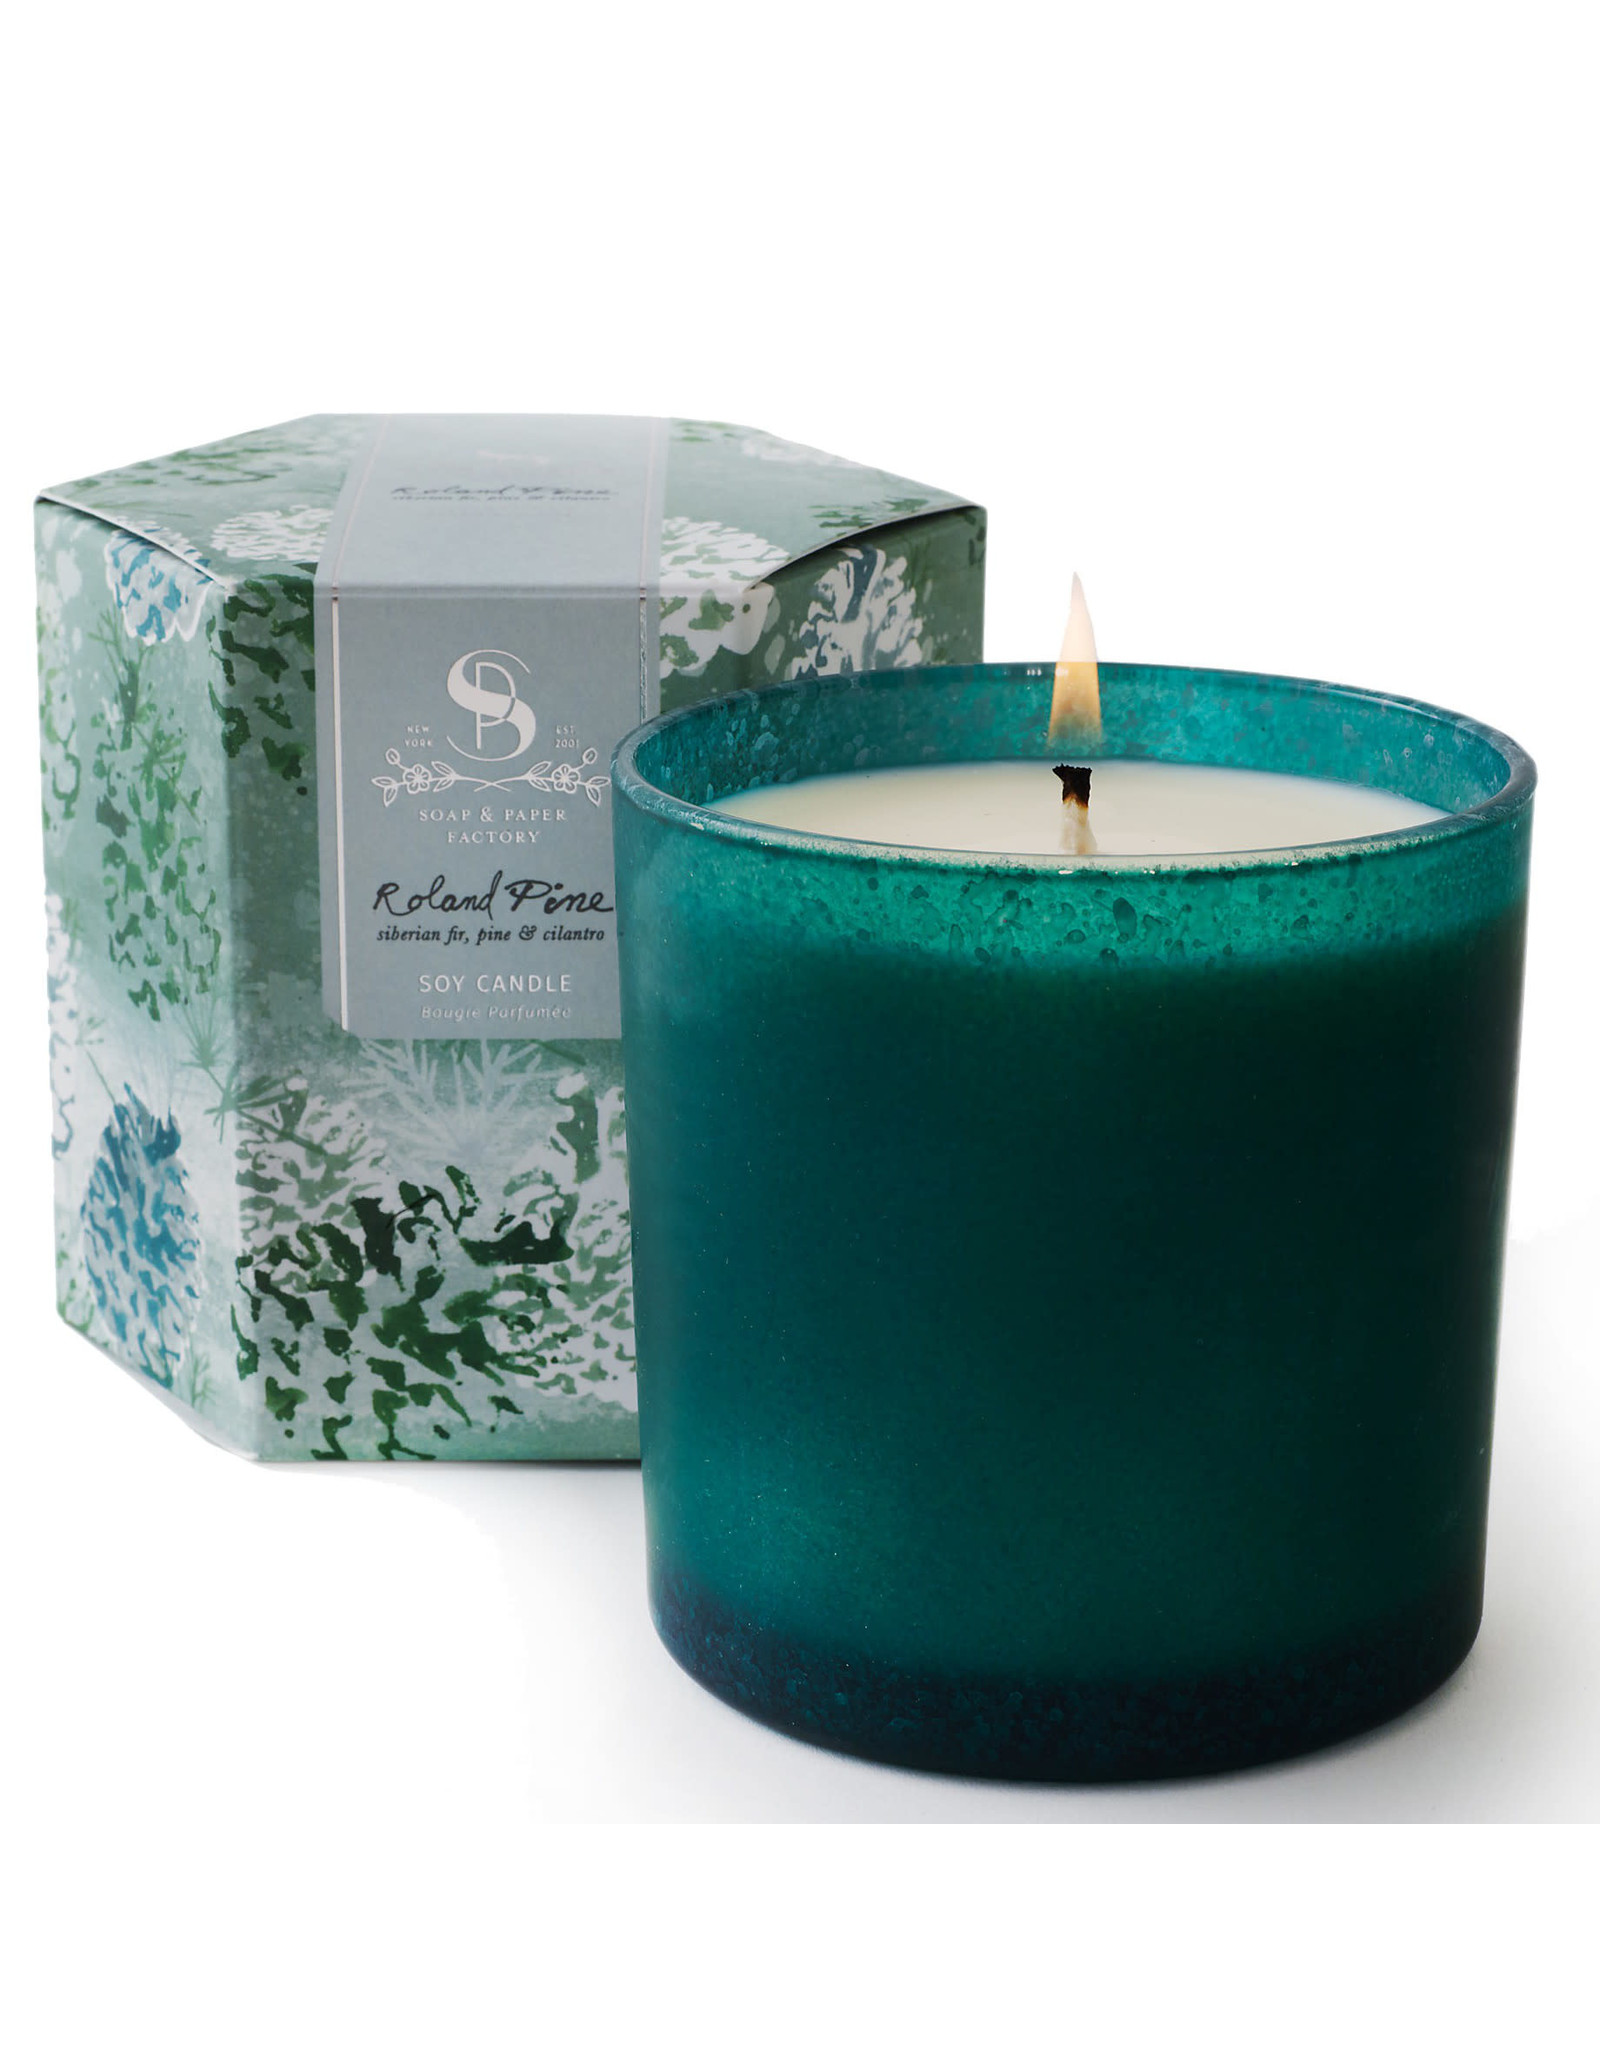 Soap & Paper Factory Roland Pine Artisan Soy Candle